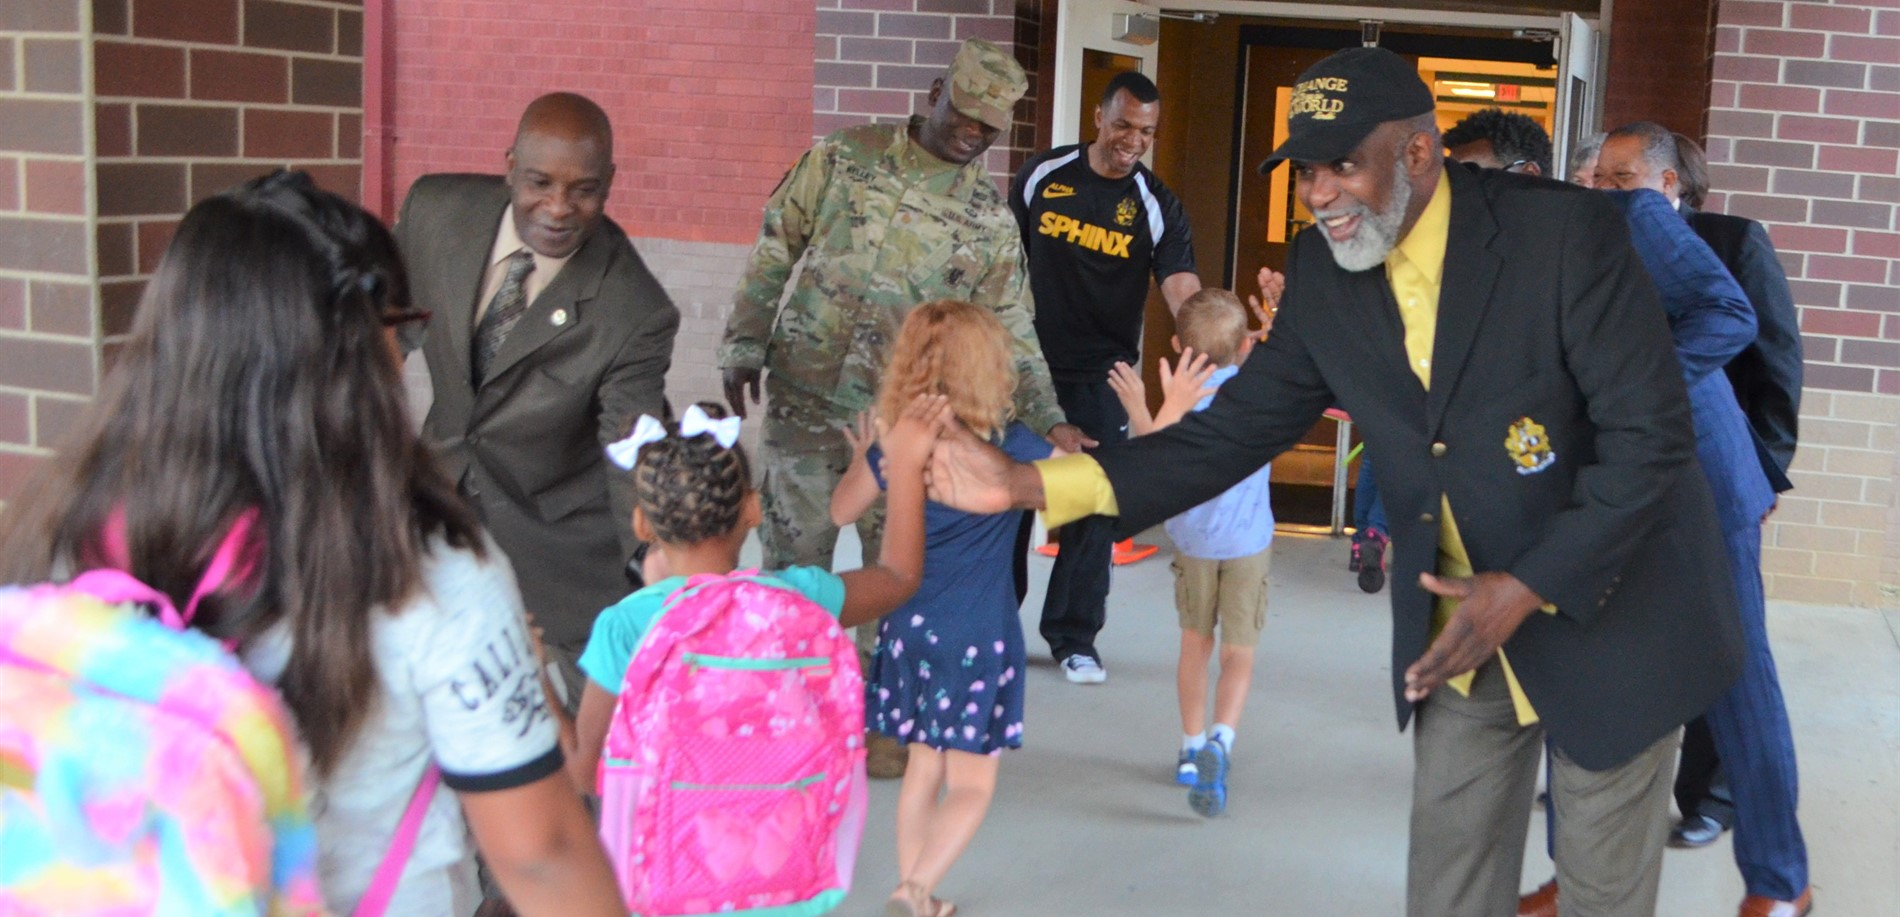 Members of the community greet students at Radcliff Elementary School.